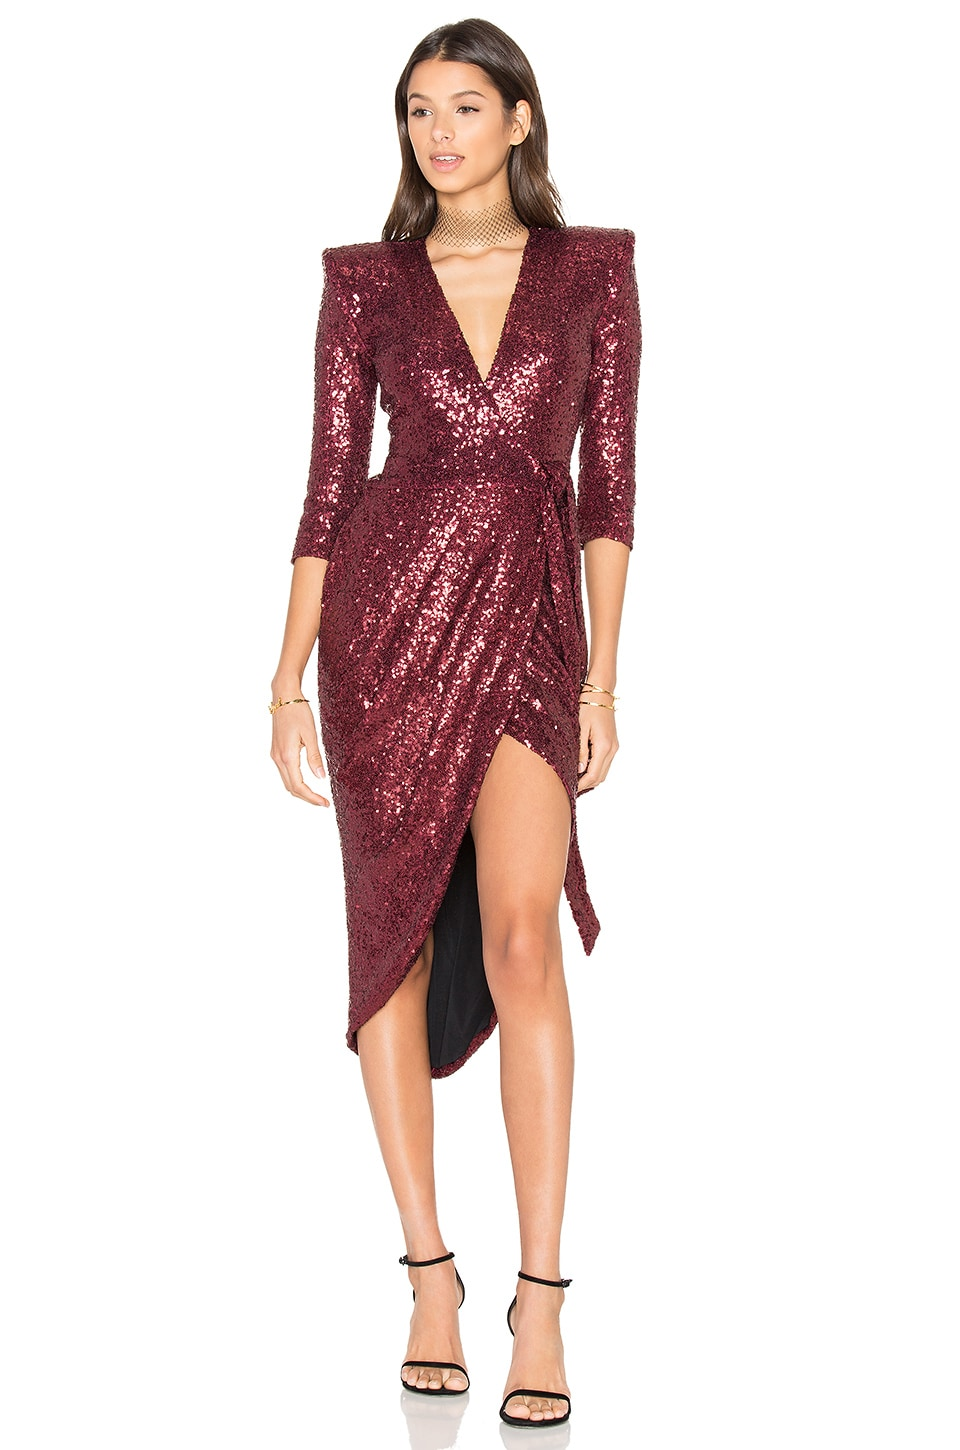 Zhivago x REVOLVE Kinsey Wrap Dress in Wine